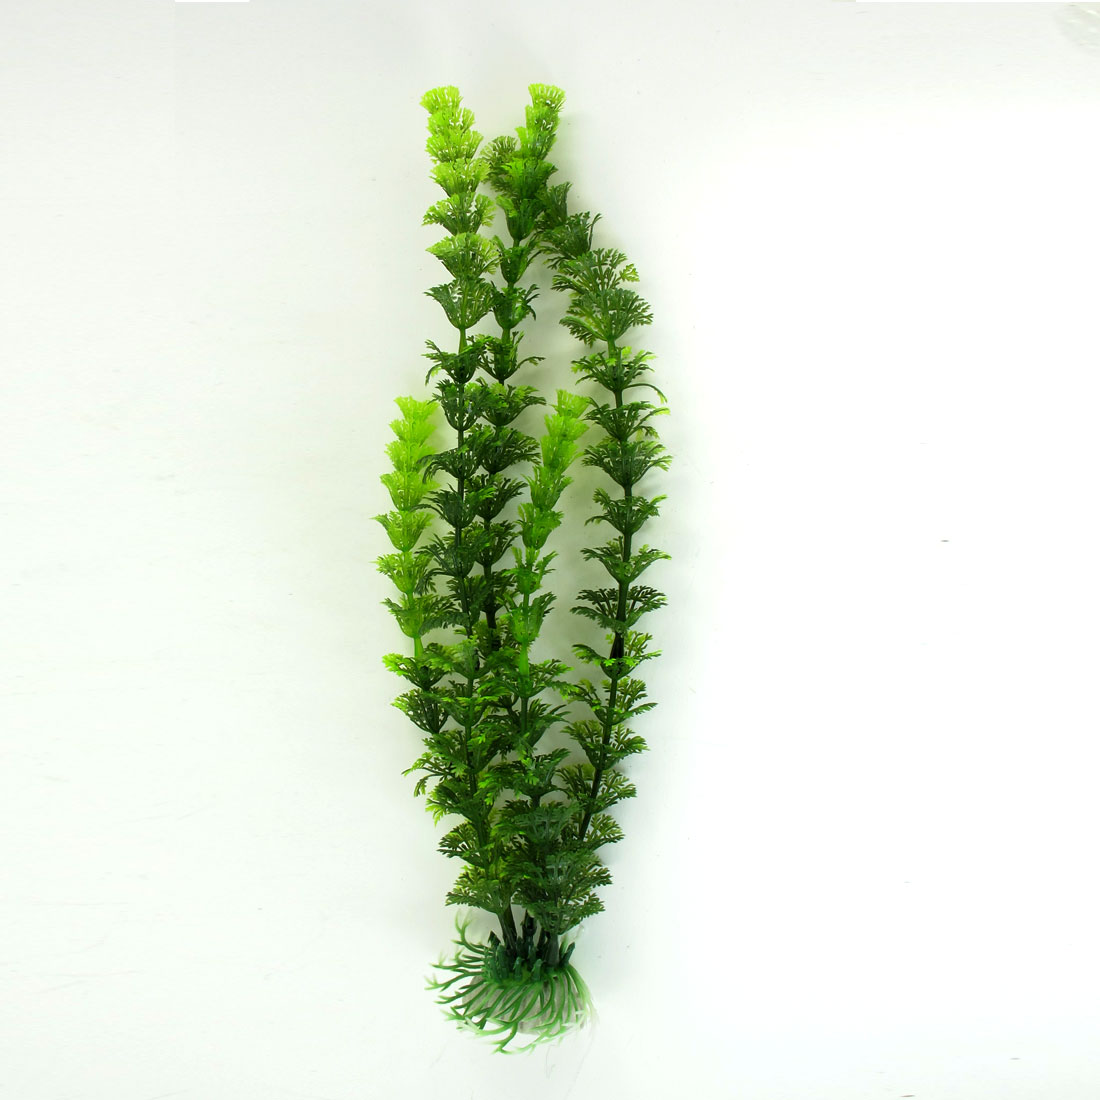 31cm High Ceramic Base Manmade Plastic Green Water Plant Grass for Aquarium Tank